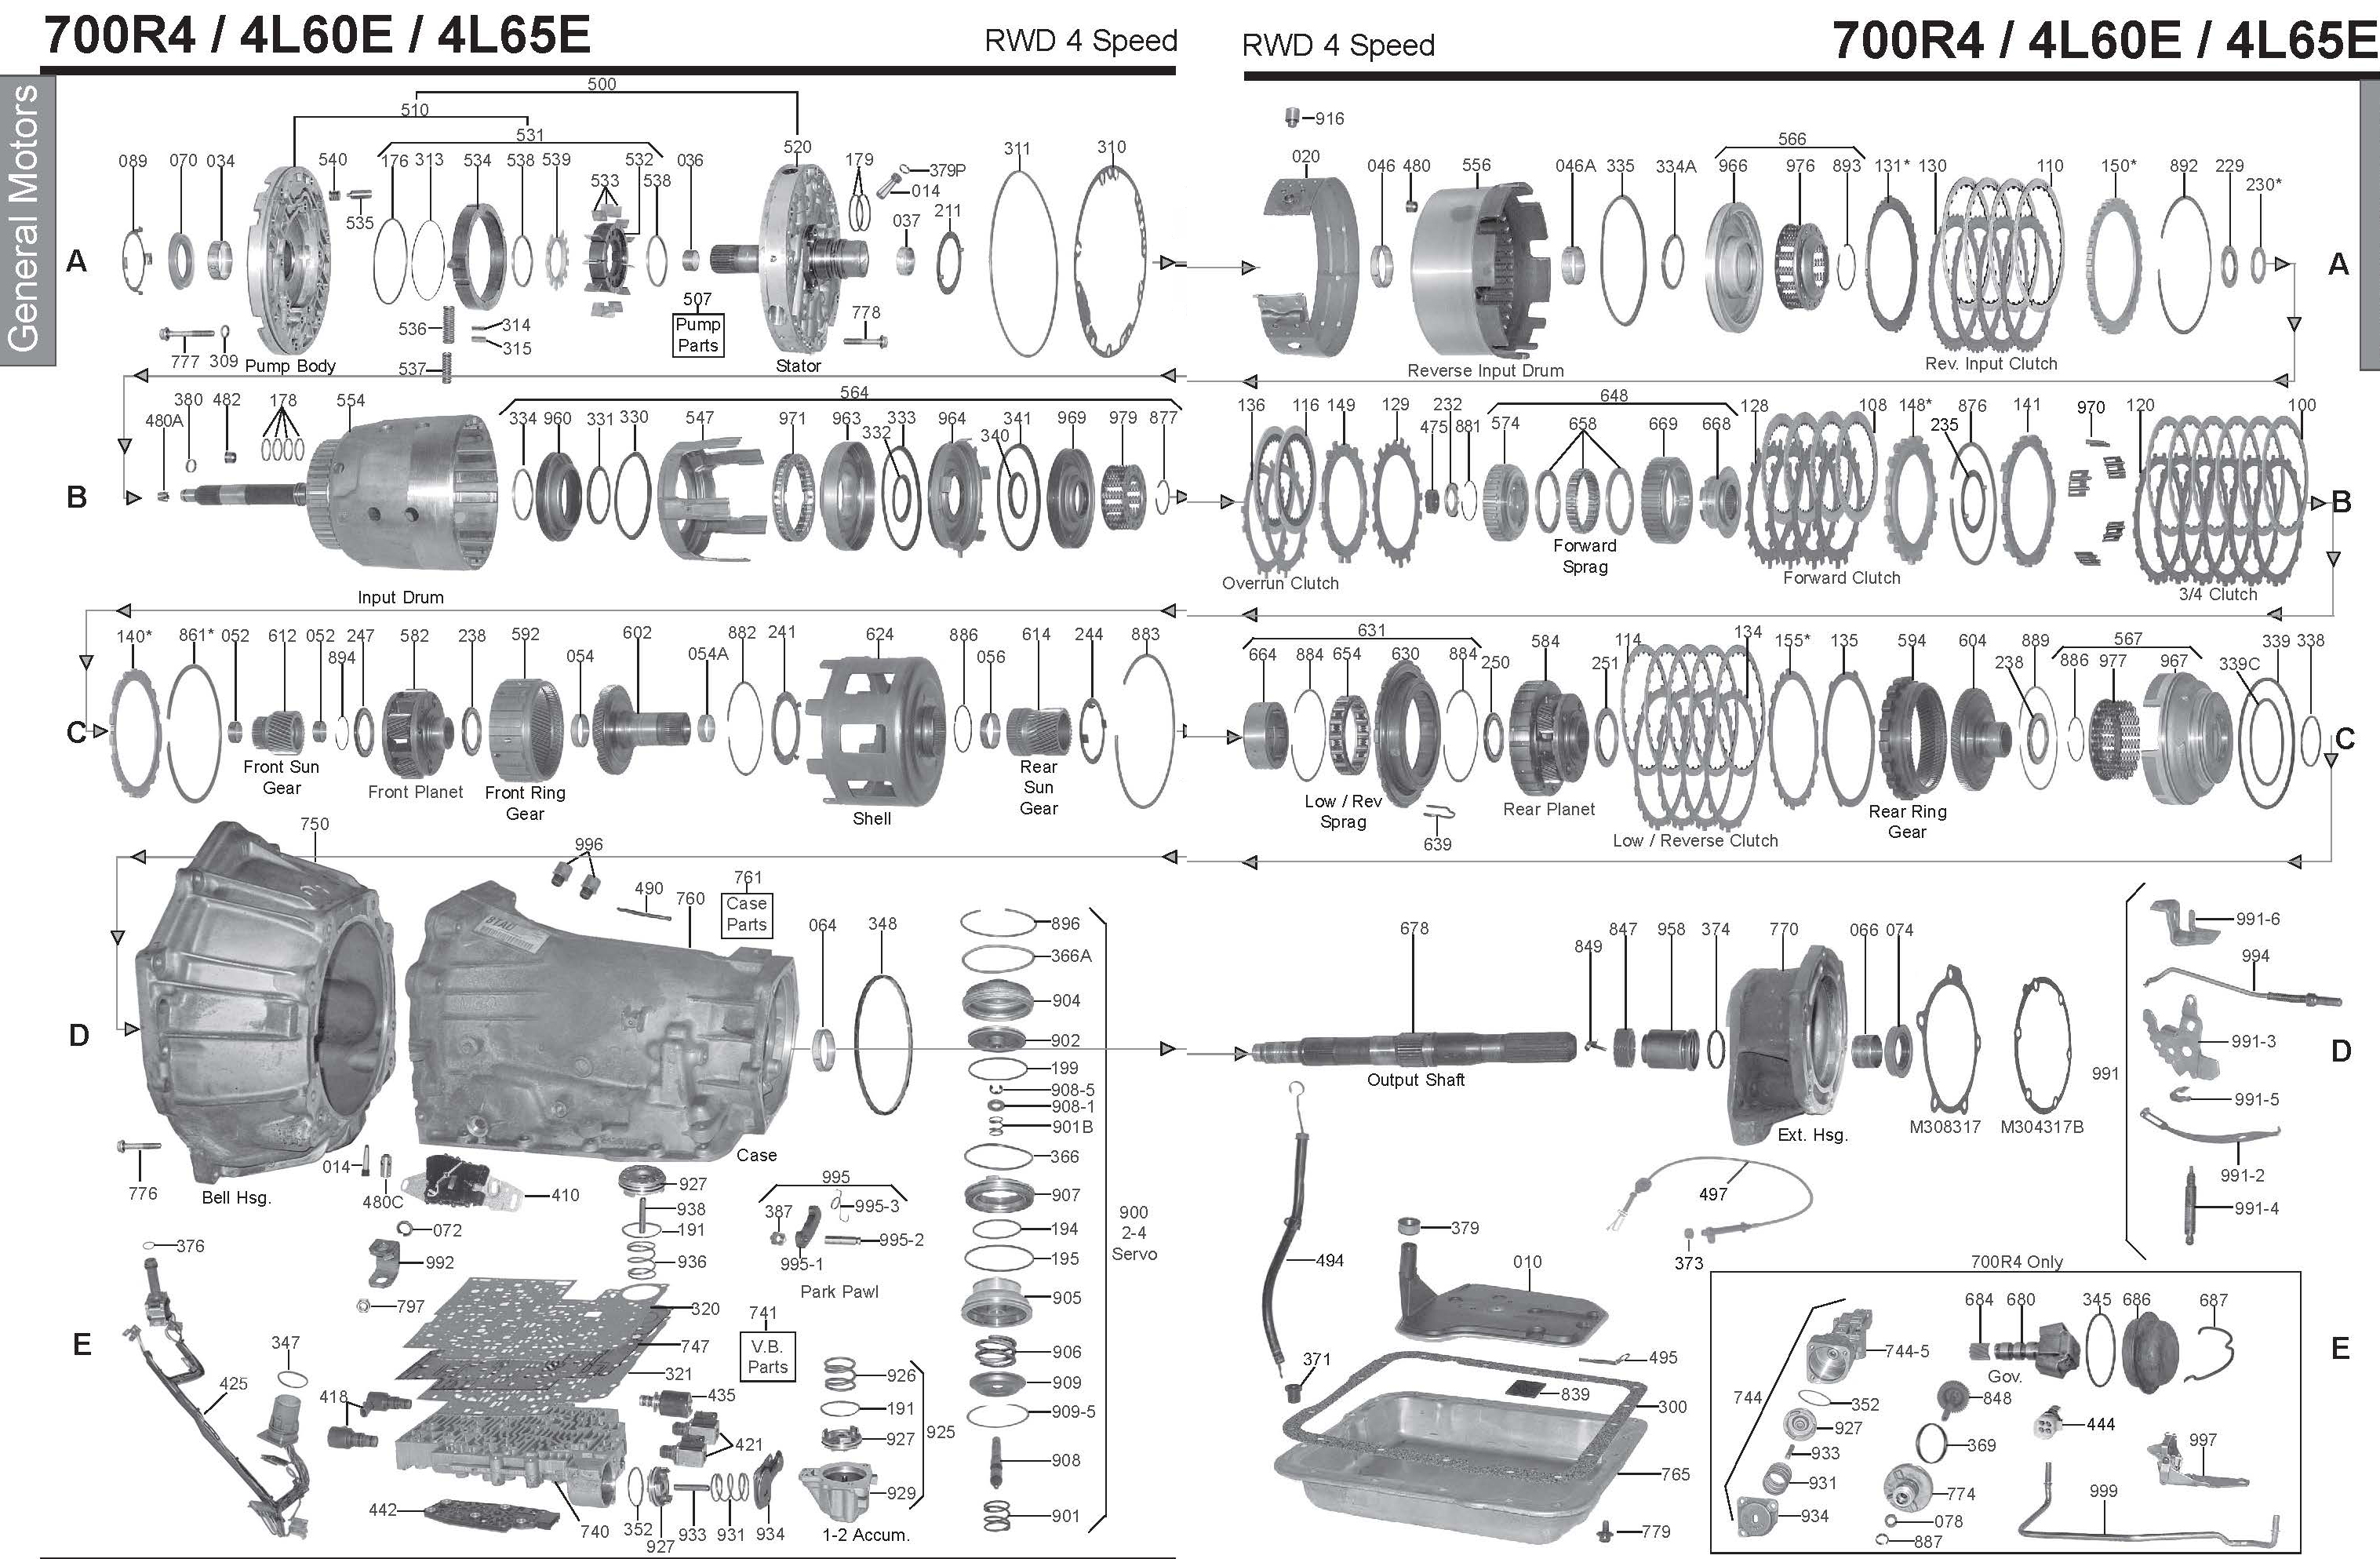 Gm 4t65e Diagram on car wiring harness repair